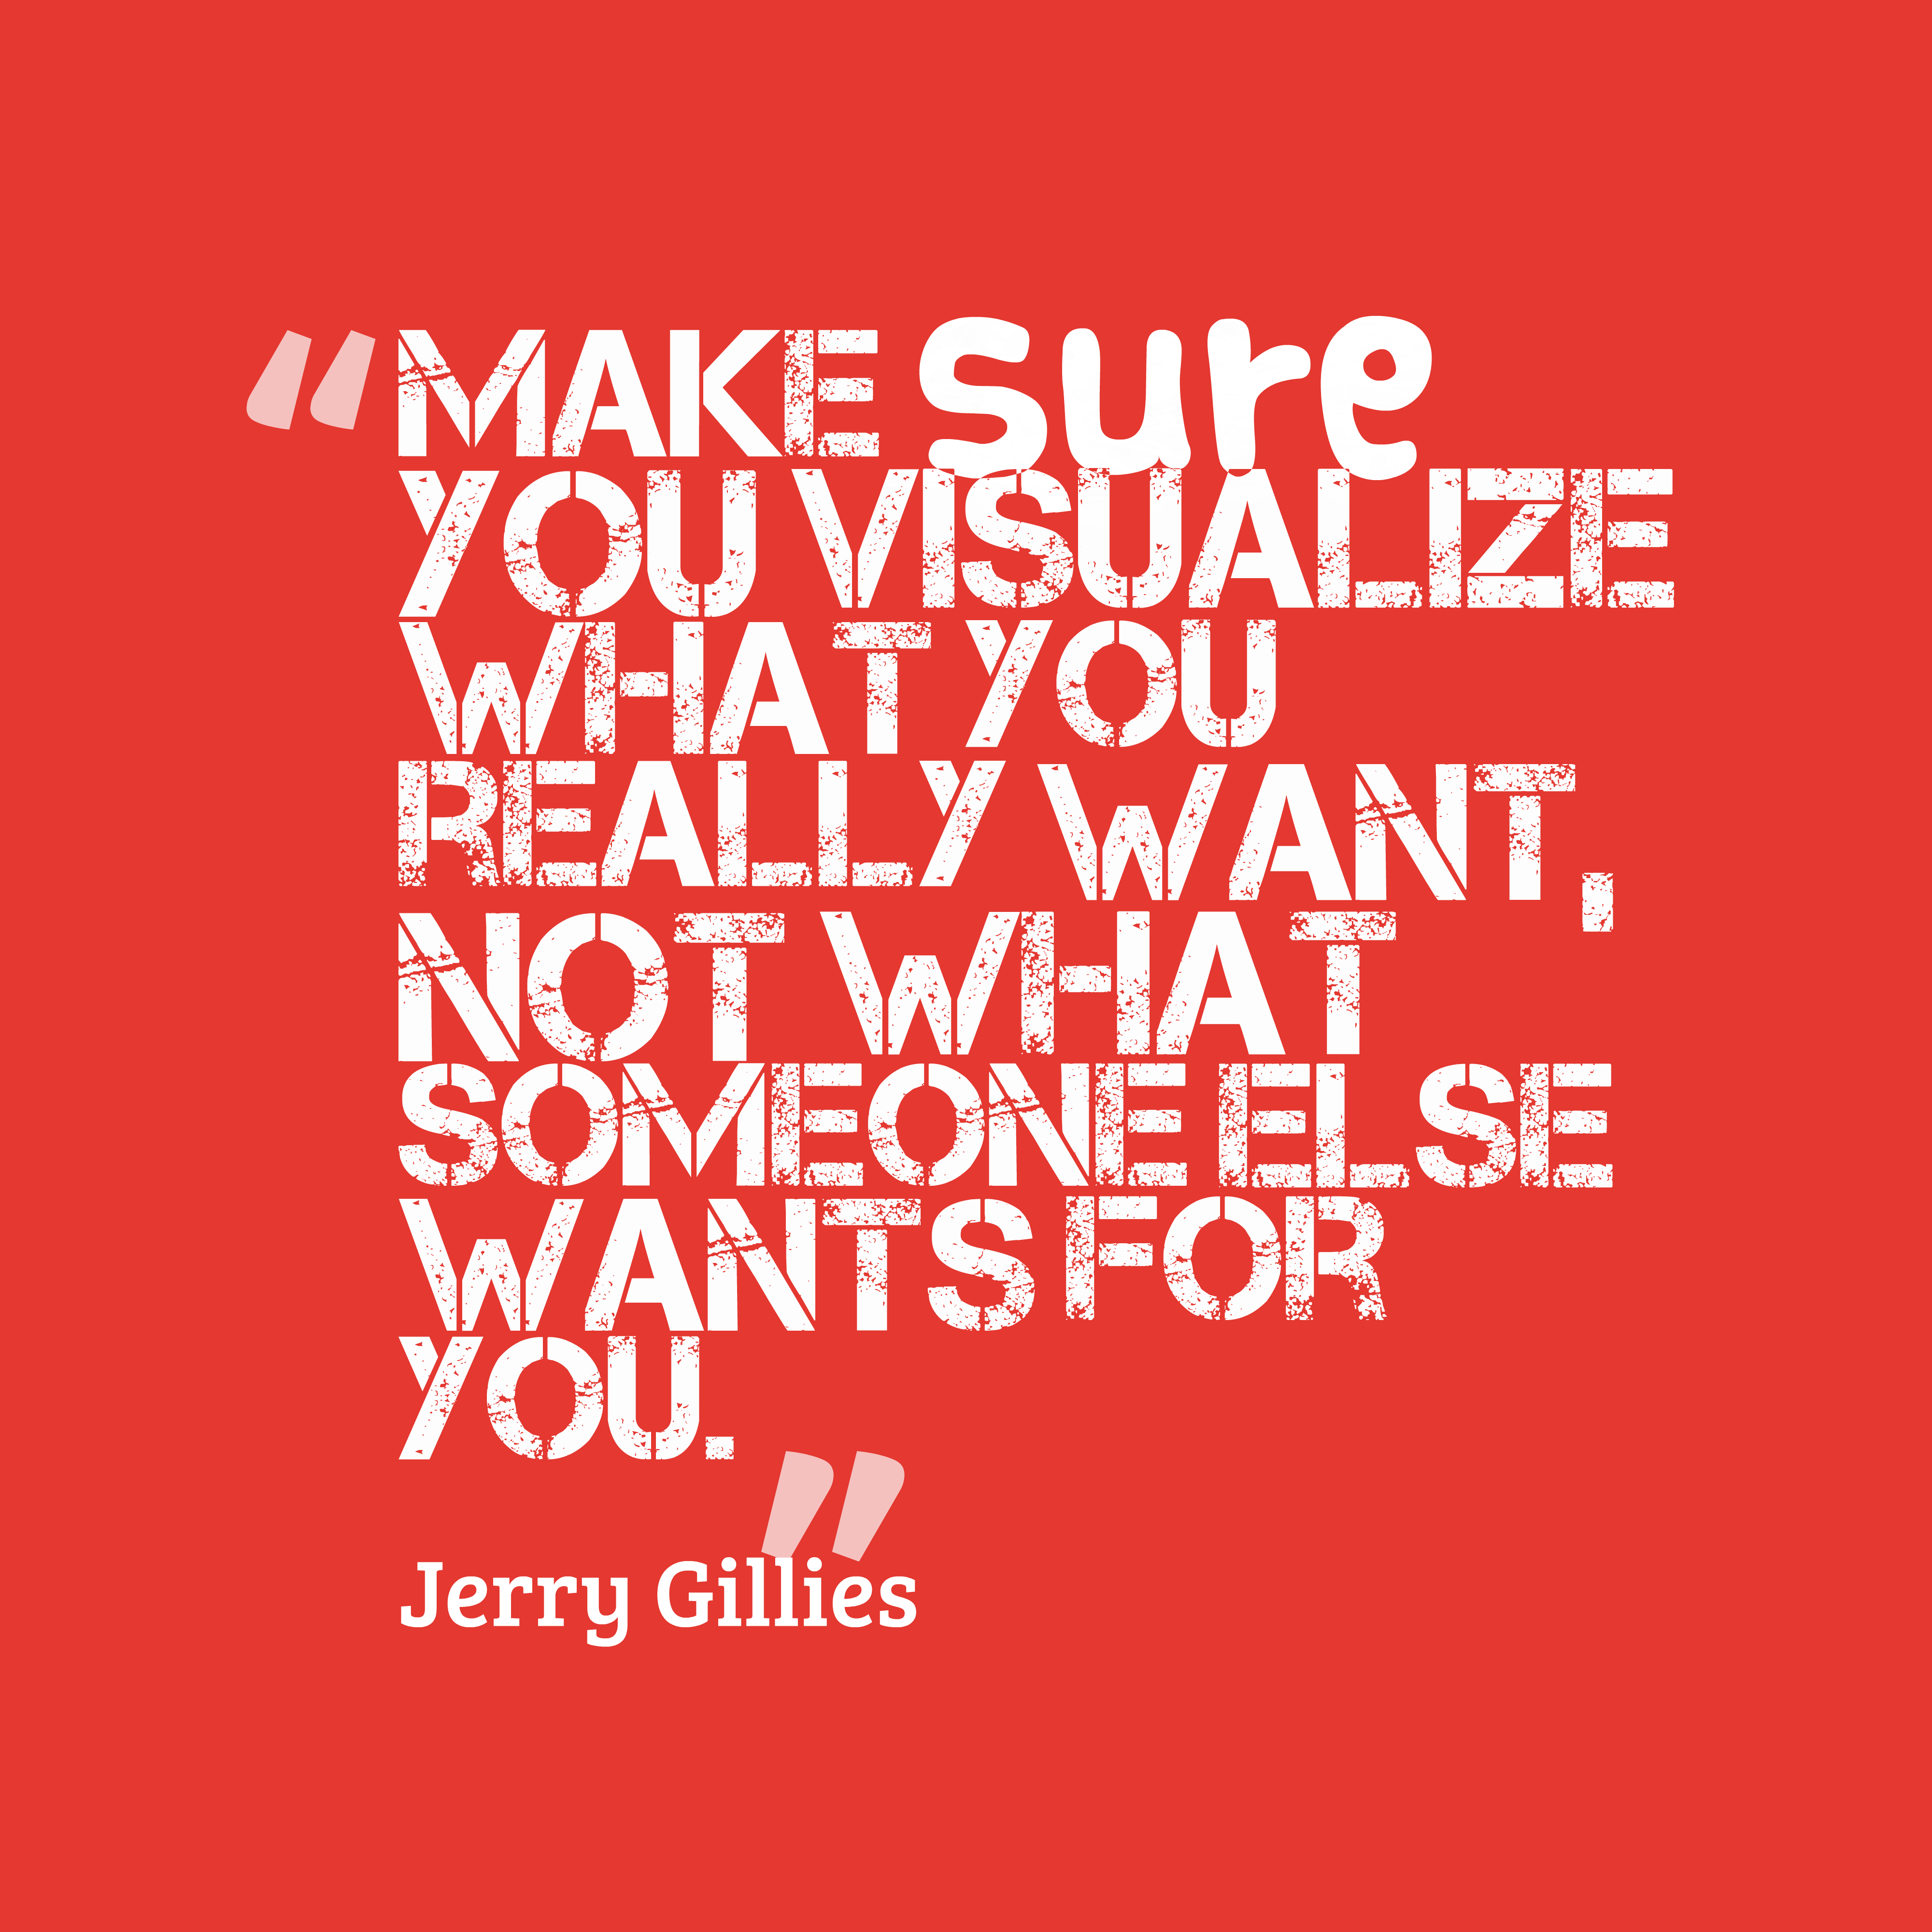 Quotes image of Make sure you visualize what you really want, not what someone else wants for you.